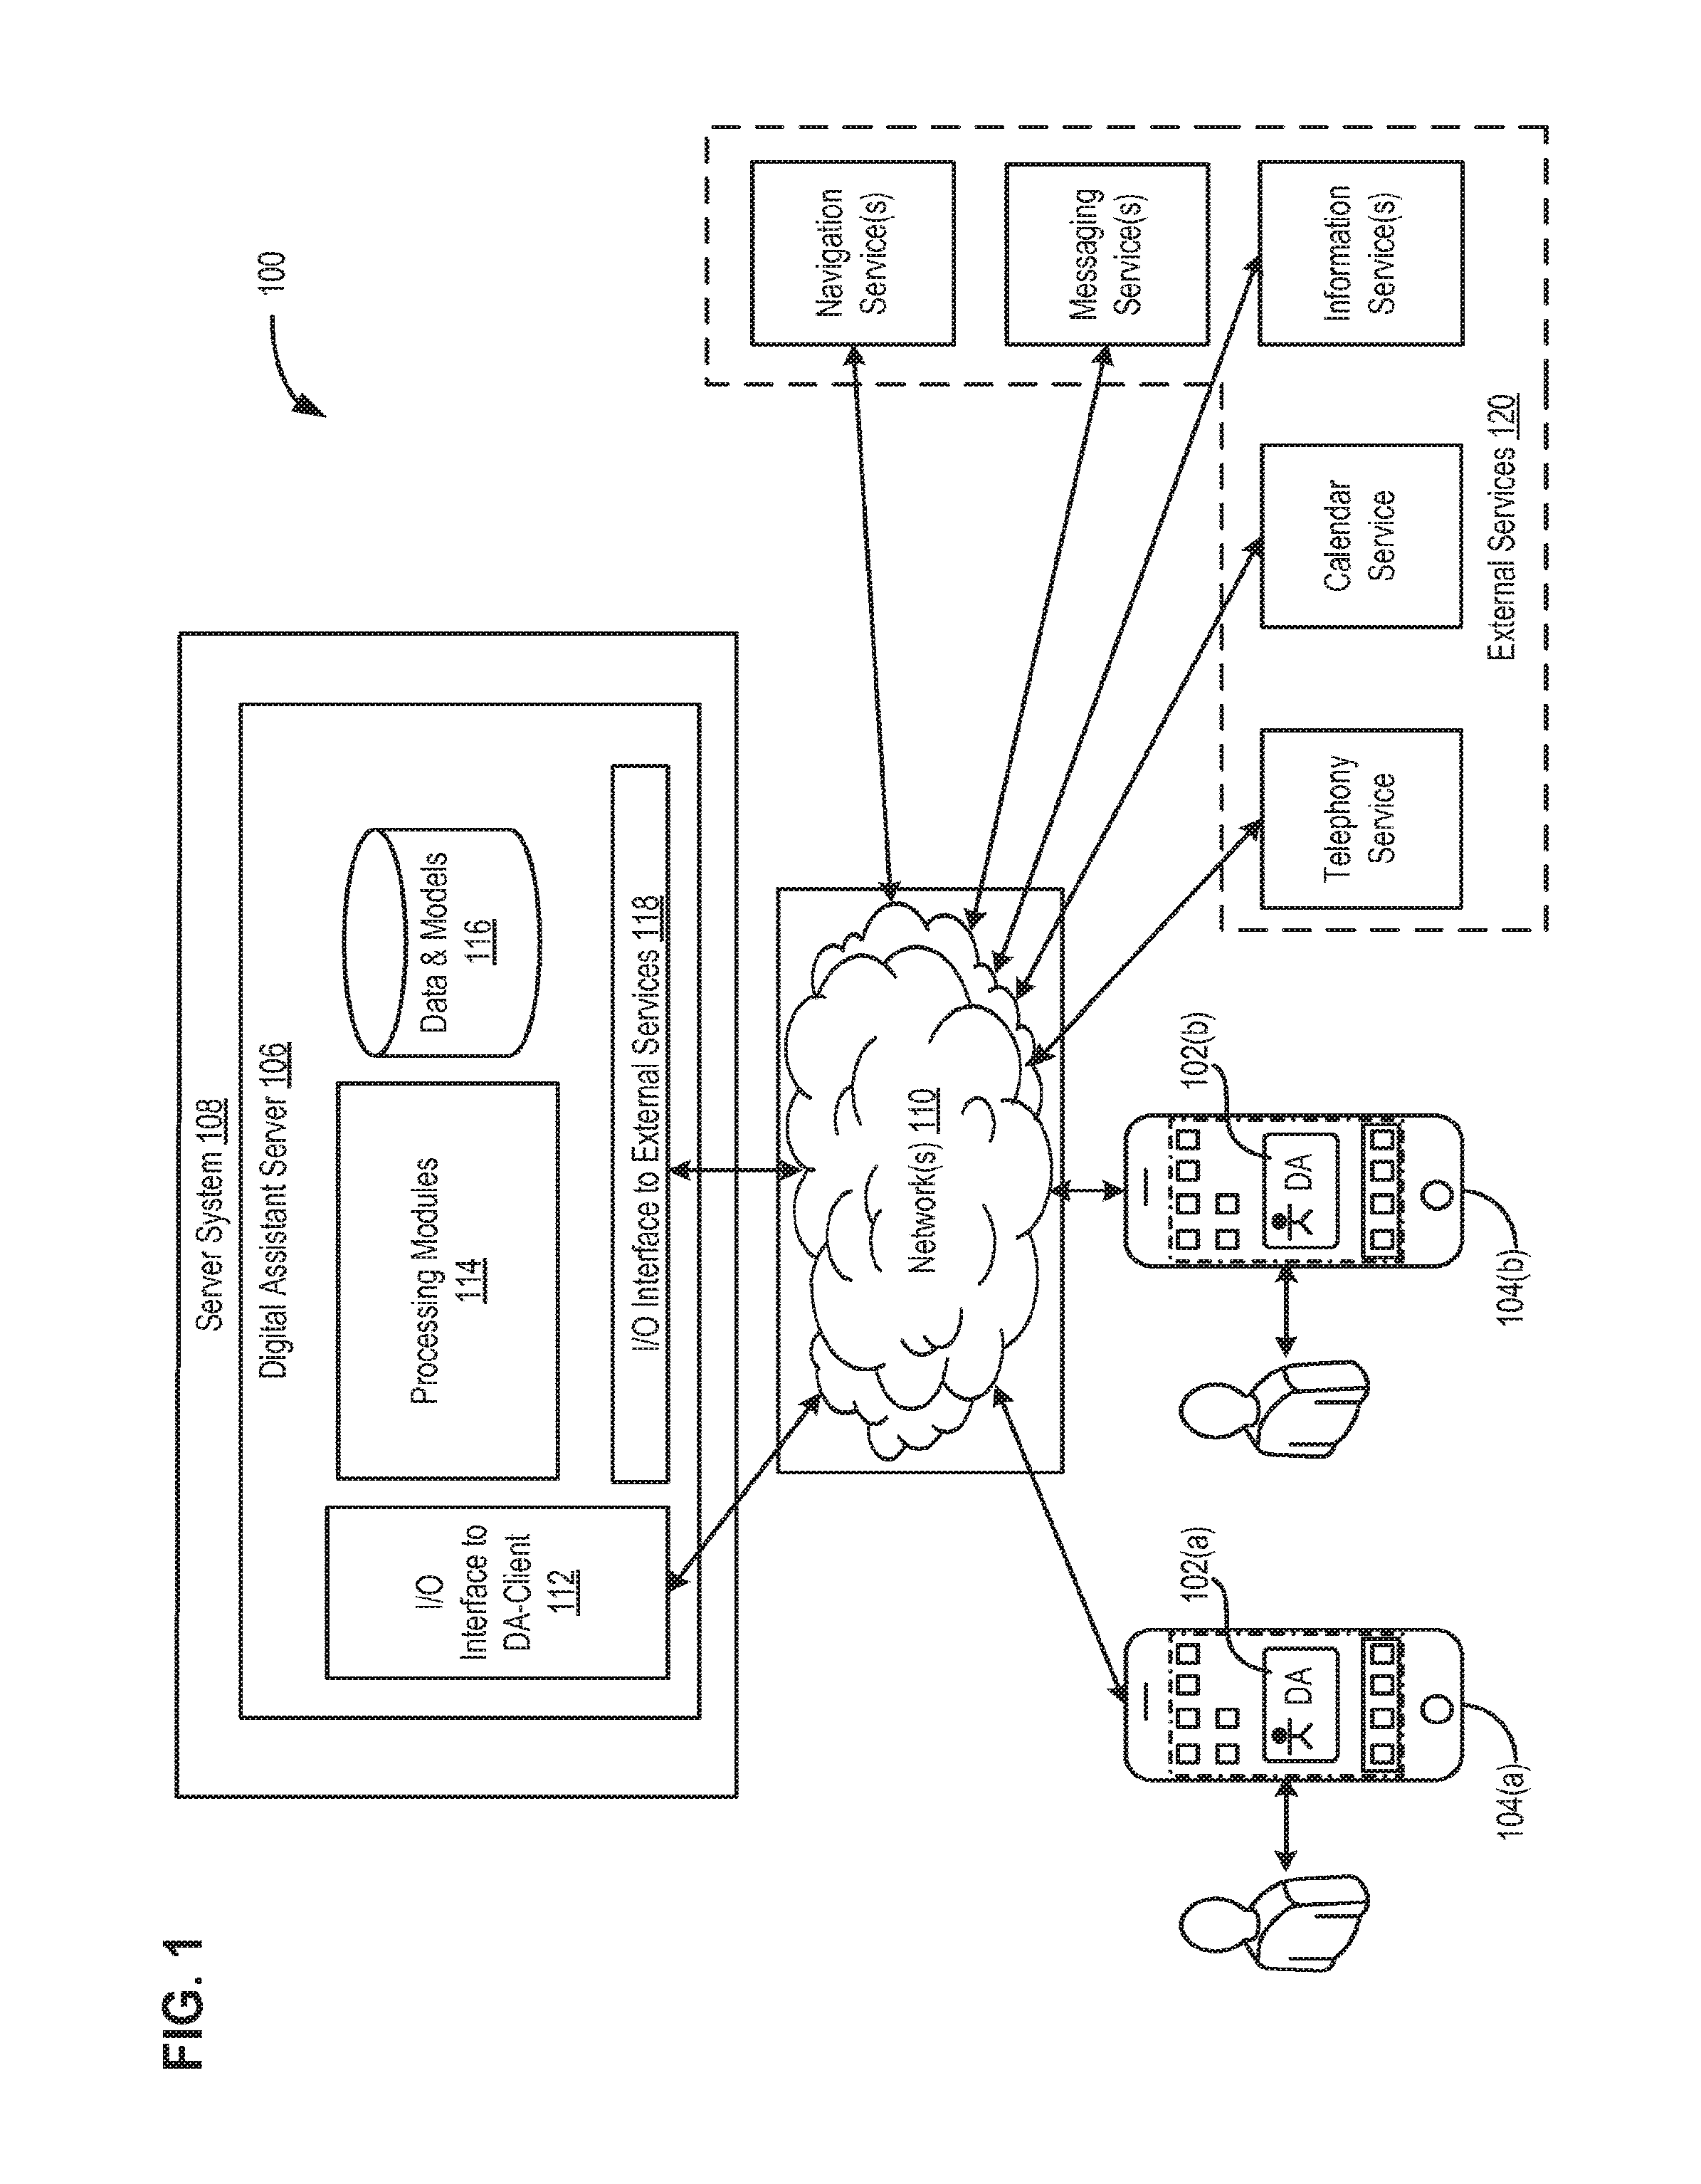 us9966060b2 system and method for user specified pronunciation of Motor Wiring Diagram us9966060b2 system and method for user specified pronunciation of words for speech synthesis and recognition patents